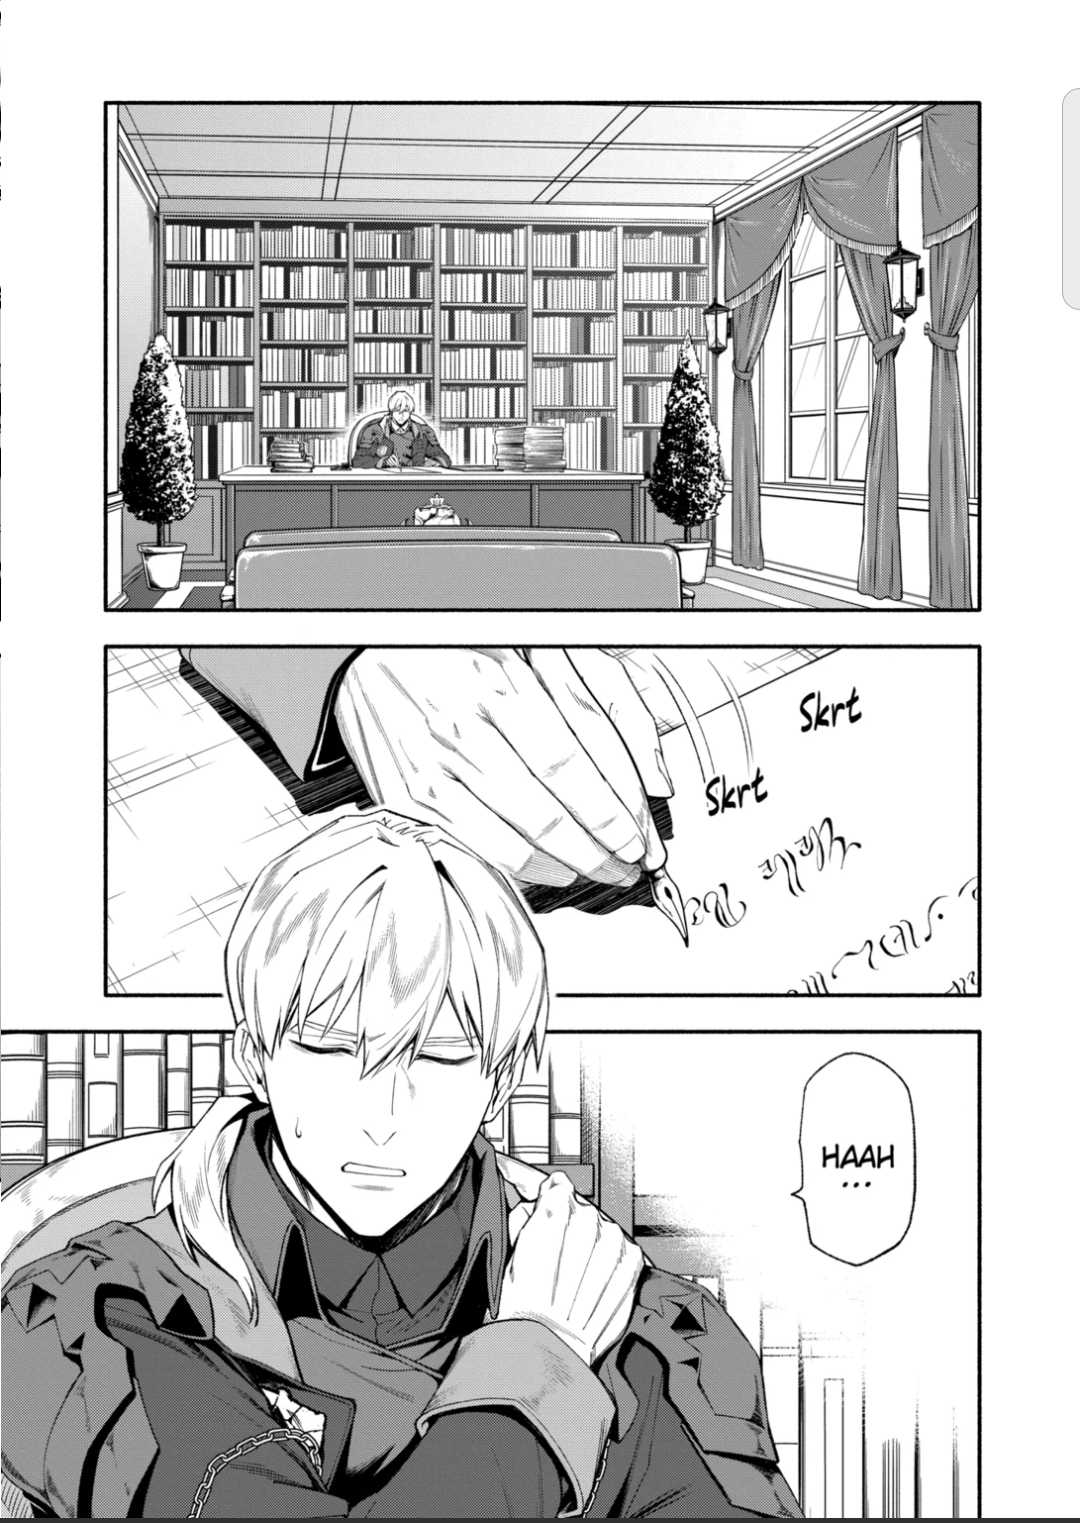 After Being Reborn, i Became The Strongest to Save Everyone Chapter 42 page 1